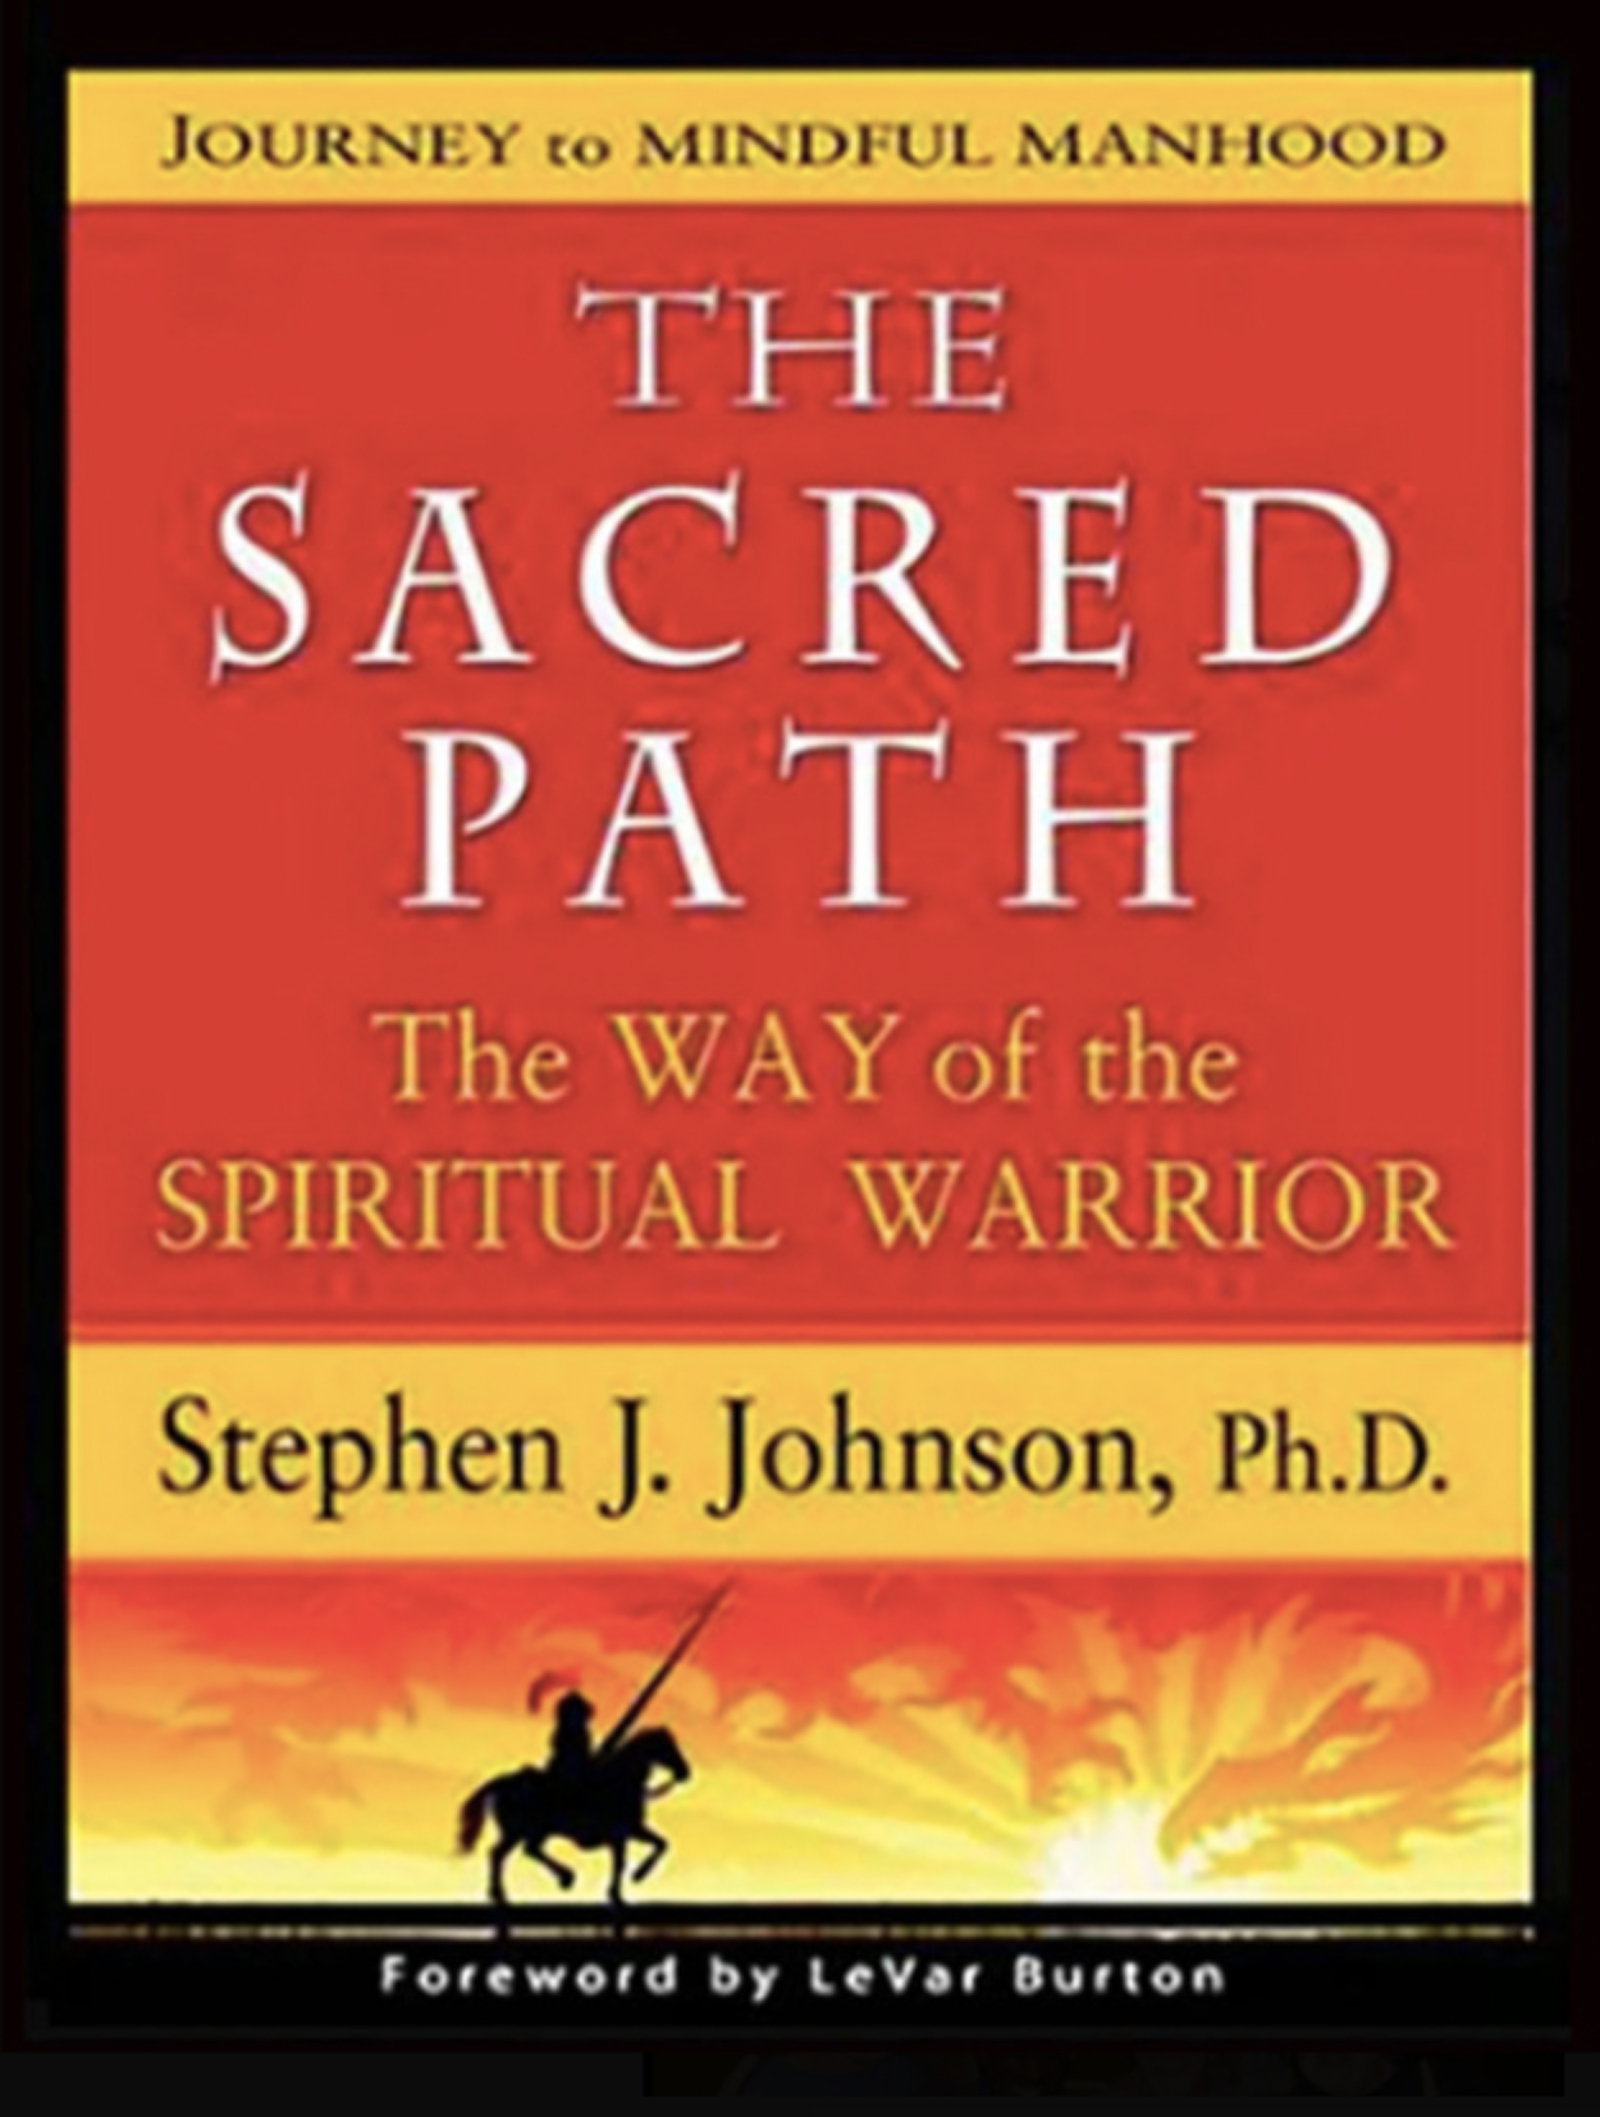 """THE SACRED PATH: THE WAY OF THE SPIRITUAL WARRIOR"""